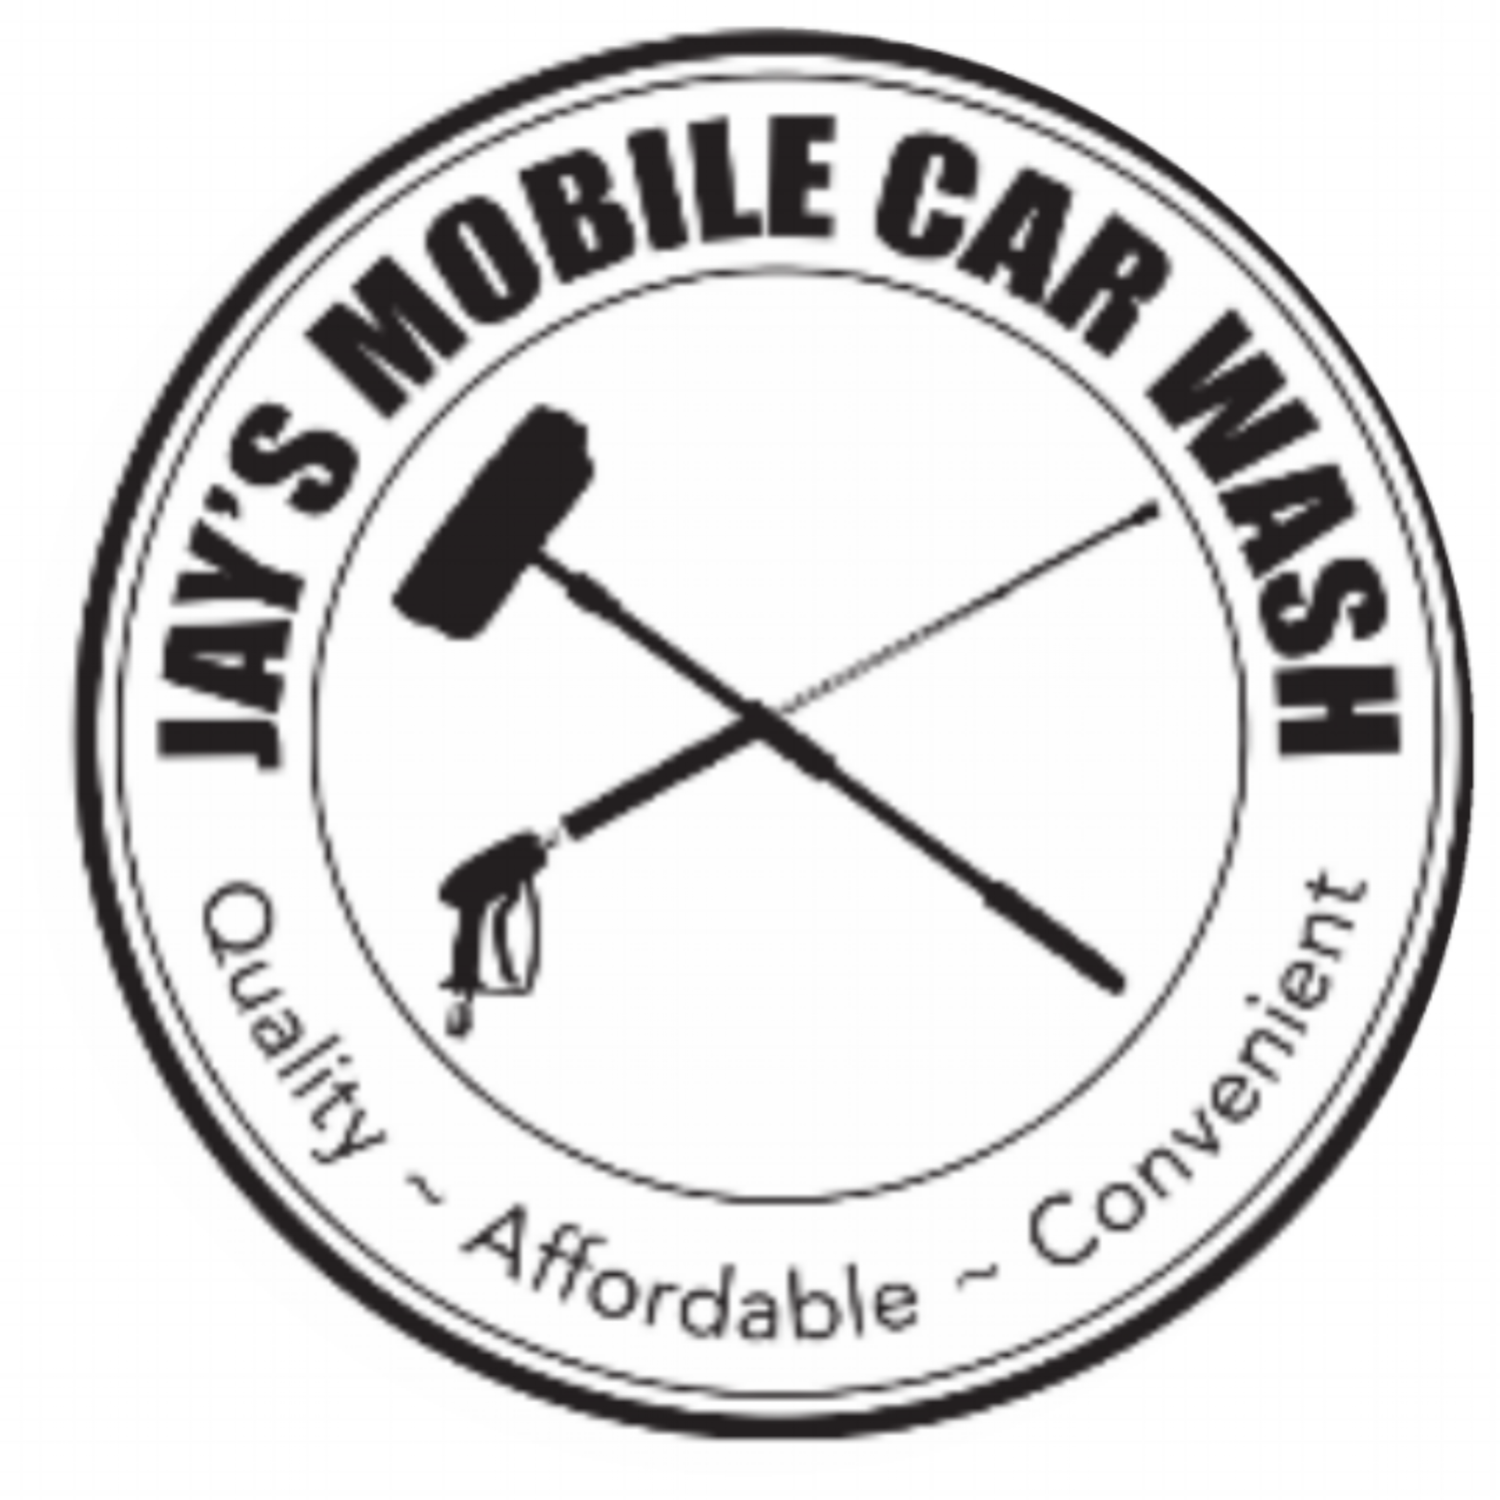 Jay's Mobile Car Wash & Detailing